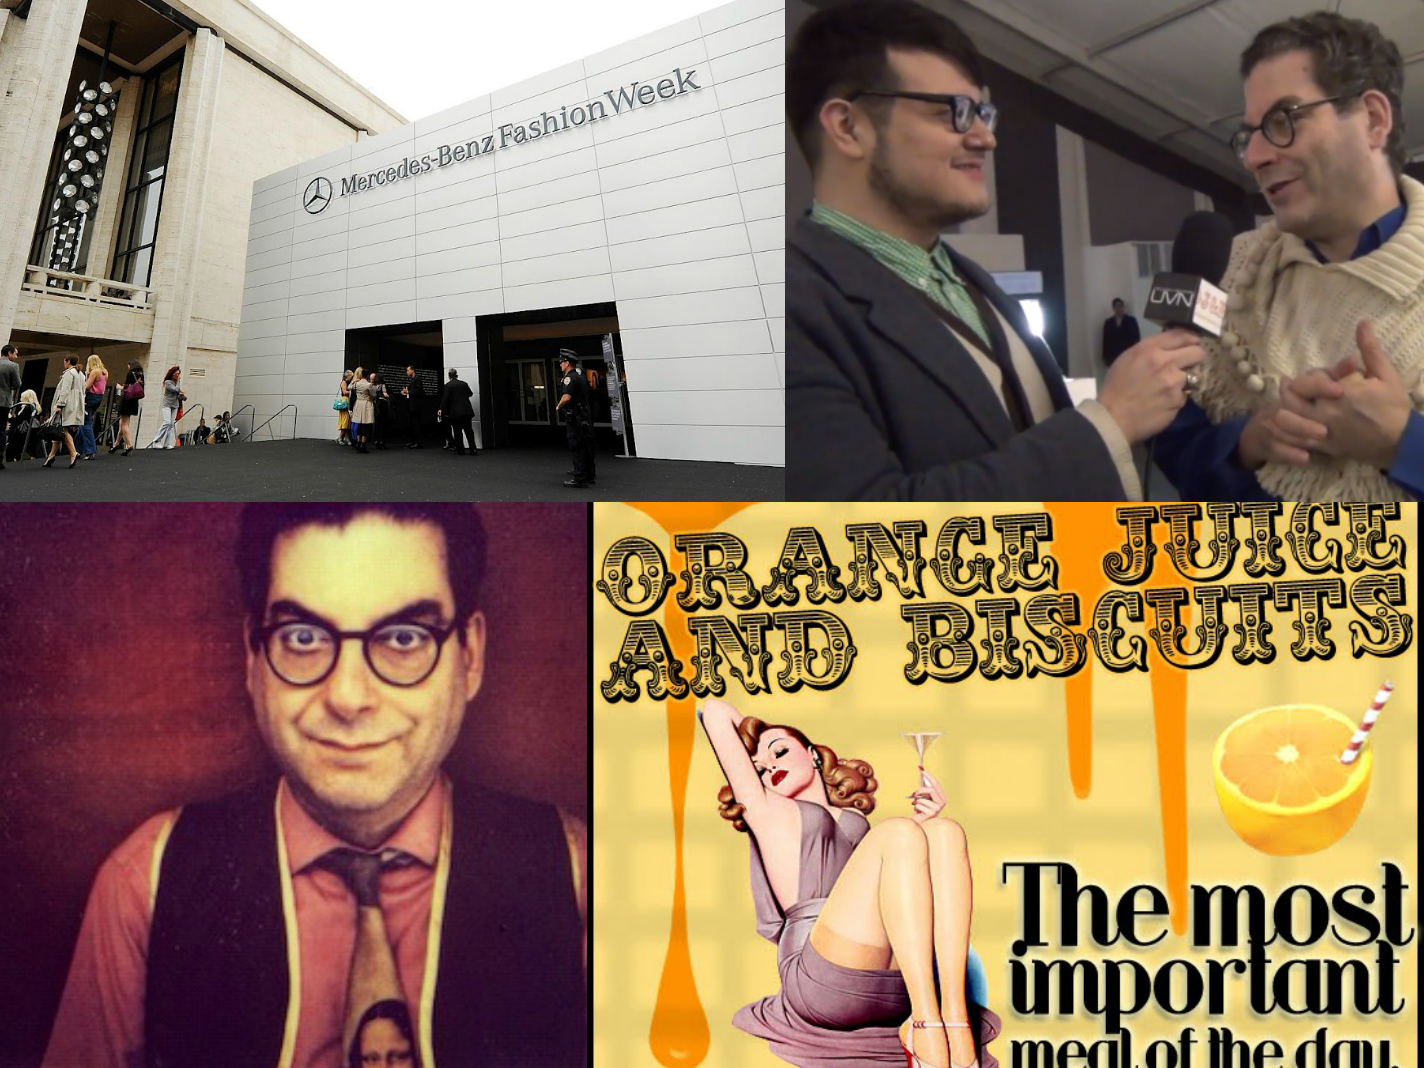 a3805e852af6 MBFW Fall 2012 Coverage  Talking With Legendary Columnist Michael Musto